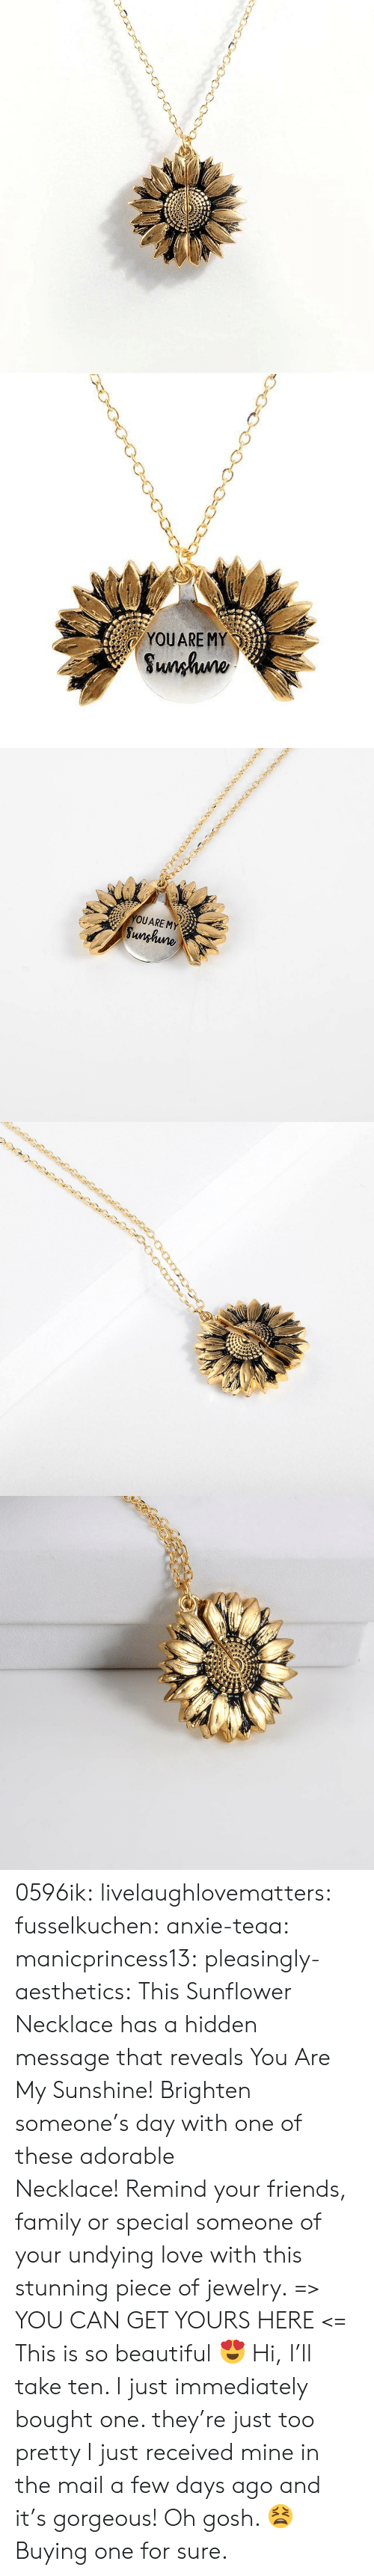 gosh: YOUARE MY  Sunhuno   YOUARE MY  Sunghune 0596ik:  livelaughlovematters:  fusselkuchen: anxie-teaa:   manicprincess13:   pleasingly-aesthetics:  This Sunflower Necklace has a hidden message that reveals You Are My Sunshine! Brighten someone's day with one of these adorable Necklace!Remind your friends, family or special someone of your undying love with this stunning piece of jewelry. => YOU CAN GET YOURS HERE <=   This is so beautiful 😍    Hi, I'll take ten.    I just immediately bought one. they're just too pretty   I just received mine in the mail a few days ago and it's gorgeous!  Oh gosh. 😫 Buying one for sure.